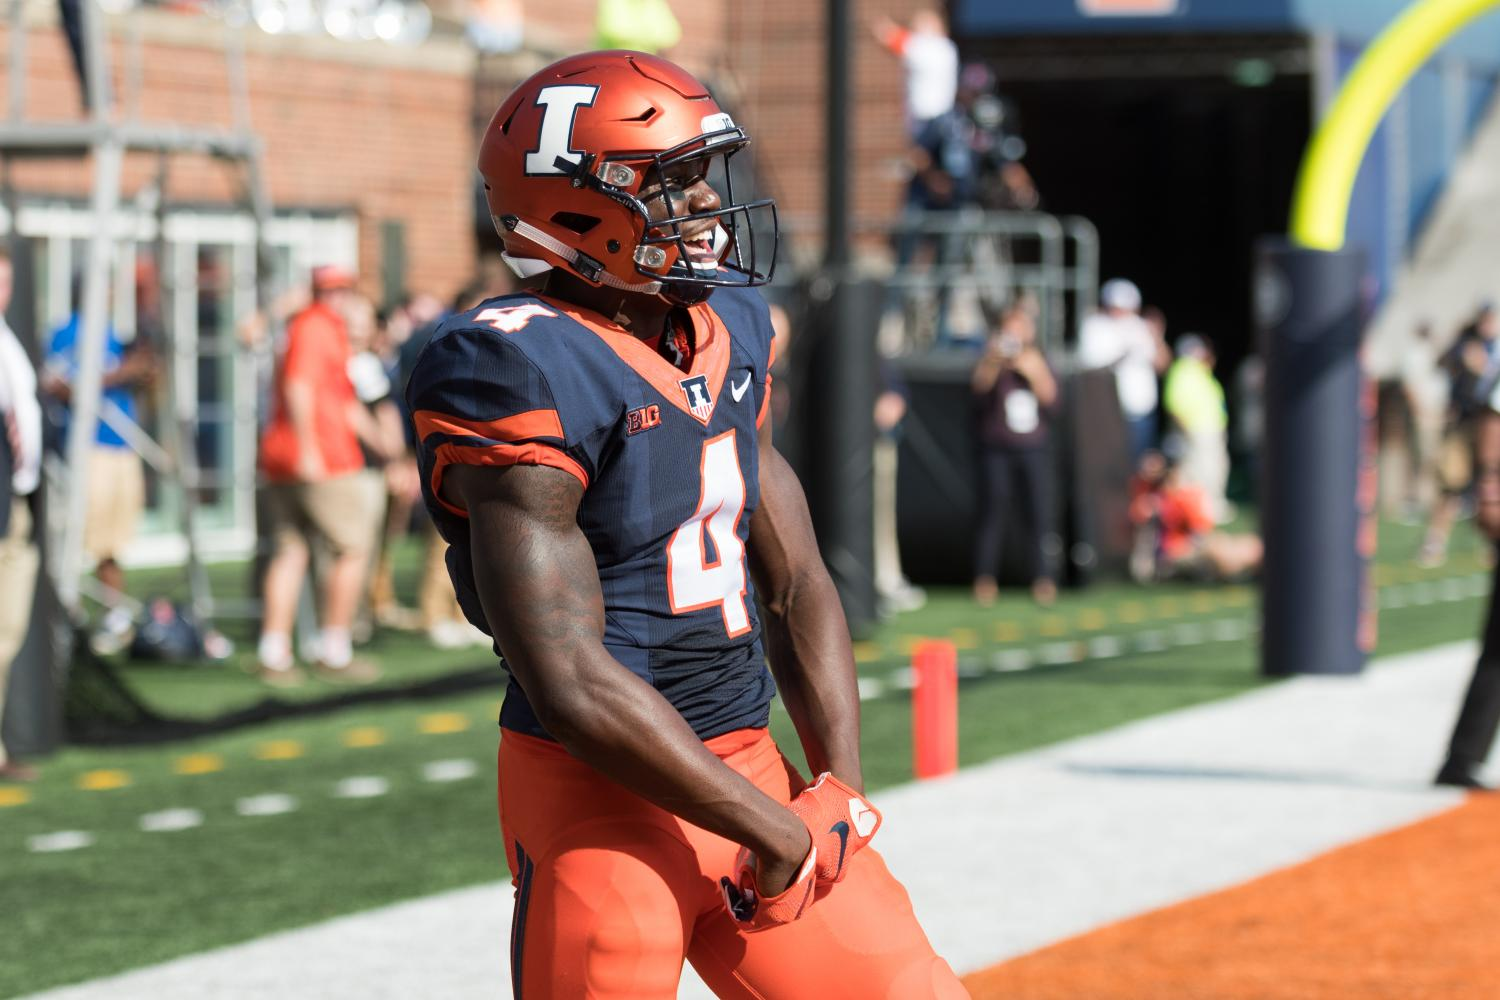 Illini freshman wide receiver Ricky Smalling celebrates after catching a touchdown in the Illini's 35-24 loss to Rutgers. Smalling had 103 receiving yards on the day.